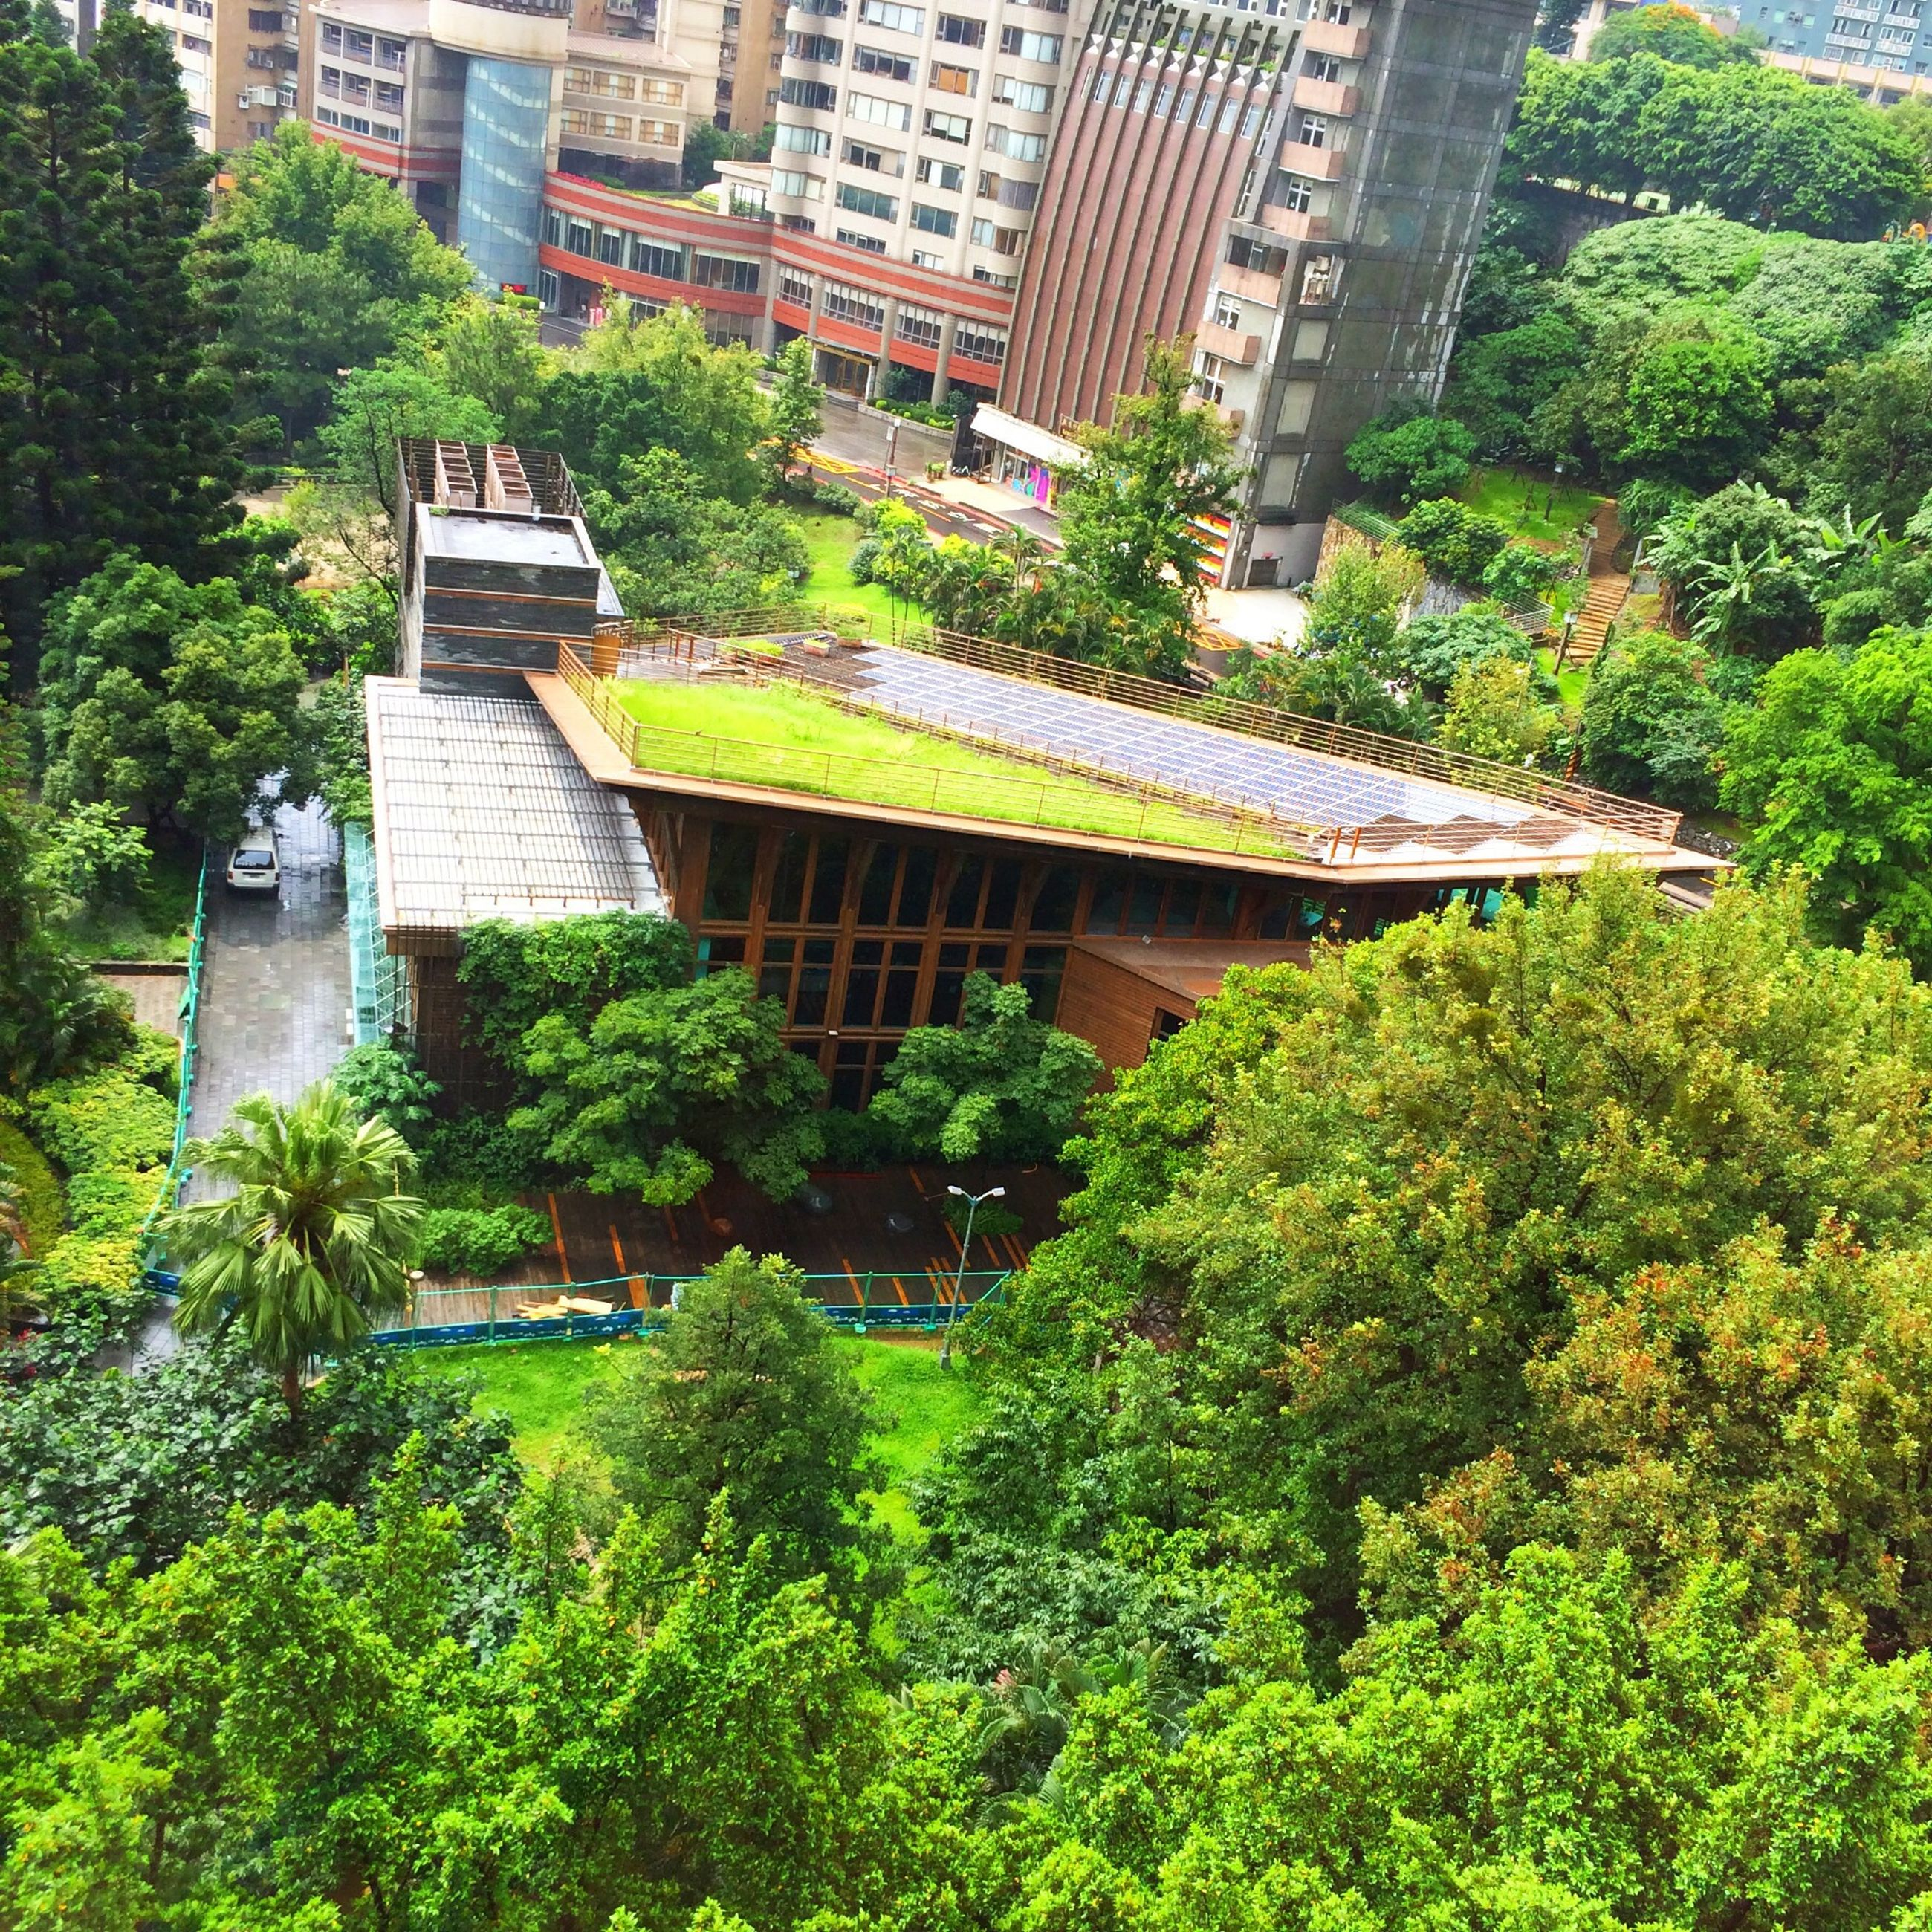 architecture, built structure, building exterior, tree, city, growth, green color, high angle view, plant, modern, day, lush foliage, skyscraper, outdoors, residential building, building, office building, city life, no people, travel destinations